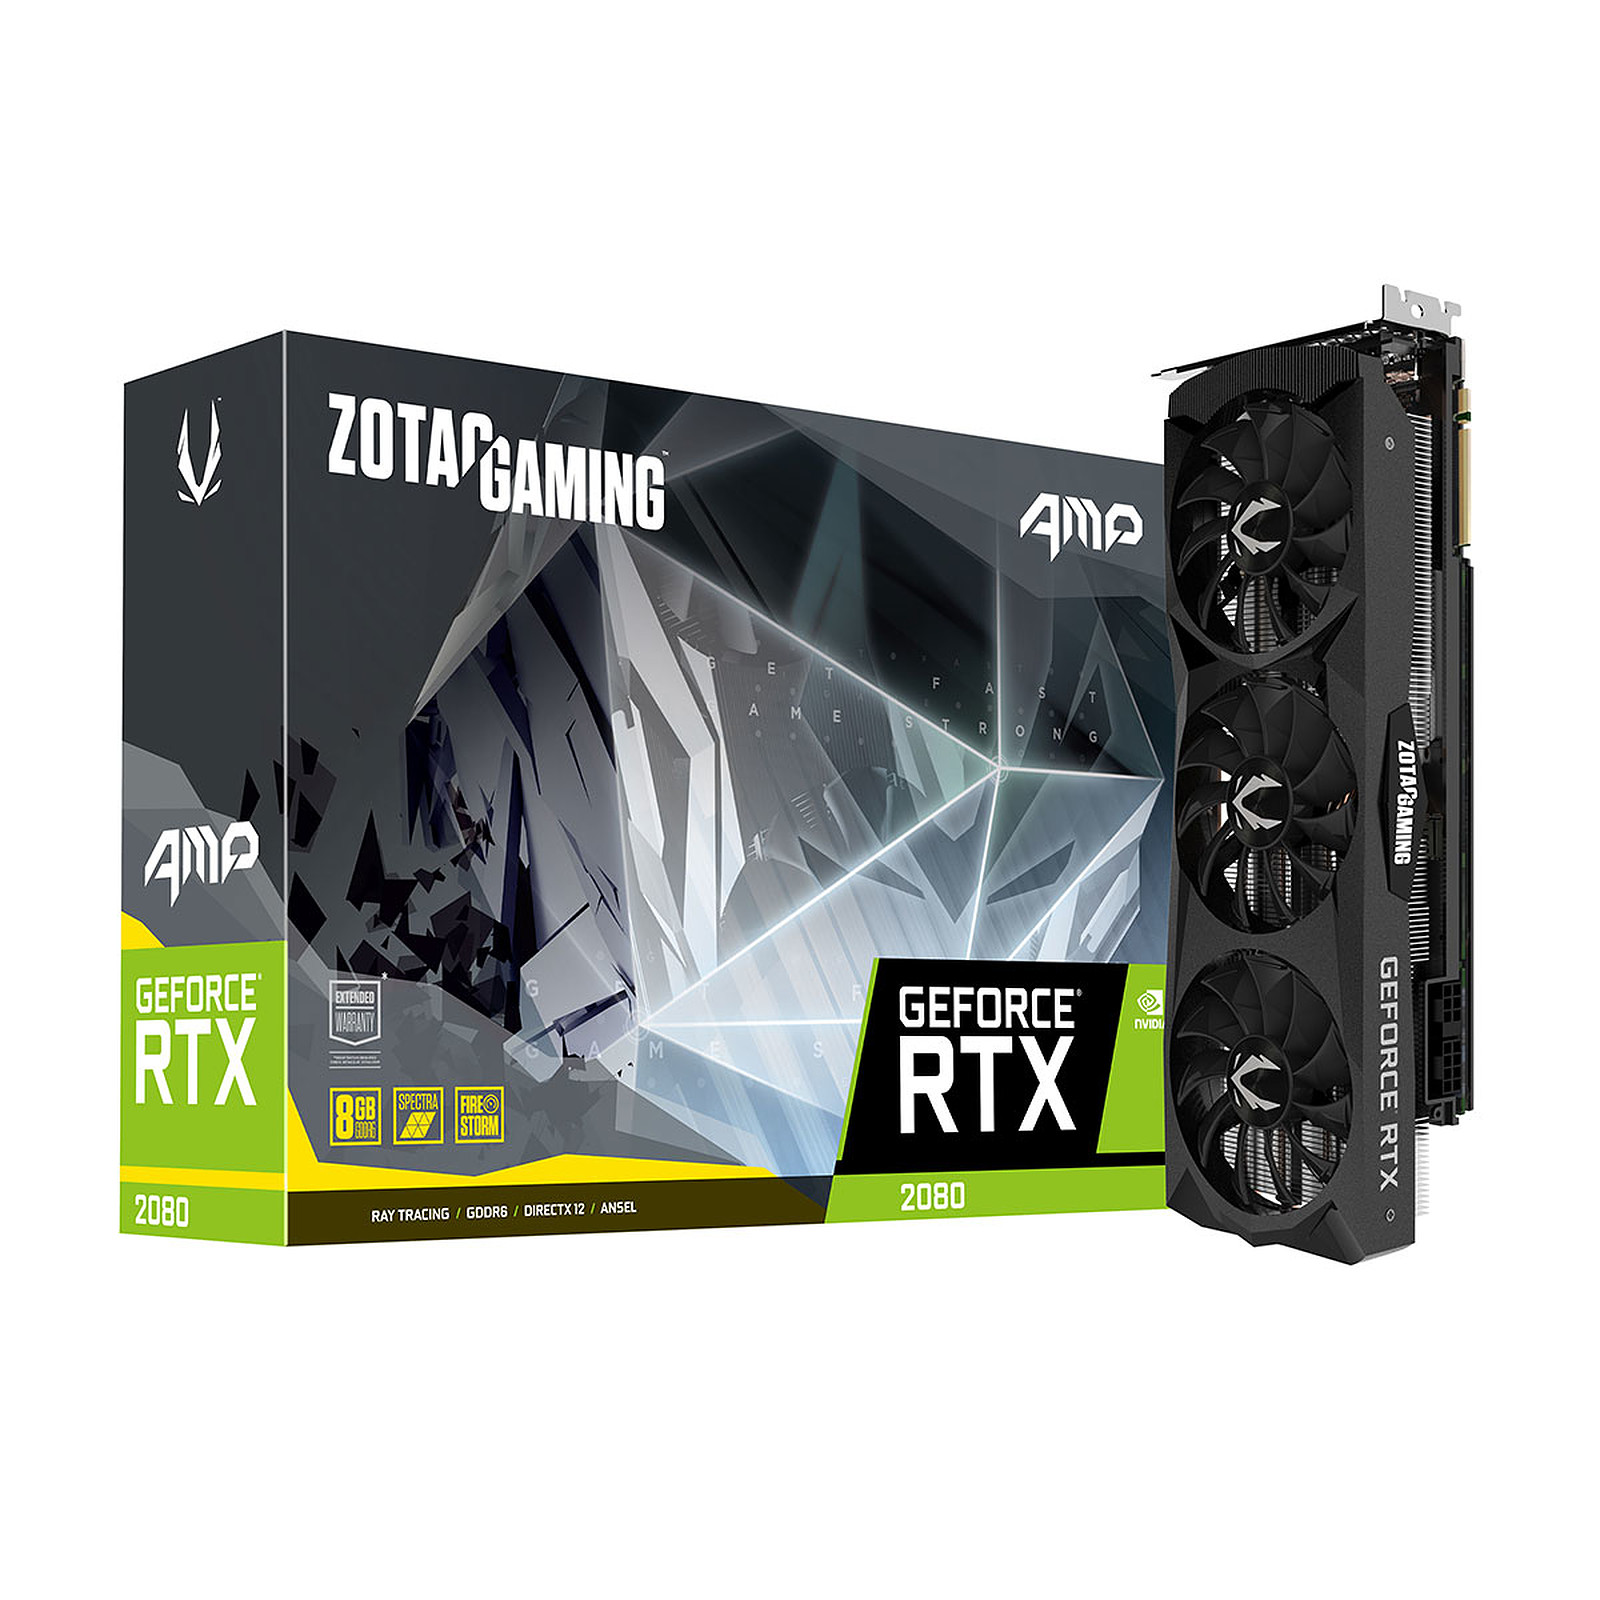 ZOTAC GeForce RTX 2080 AMP! Edition